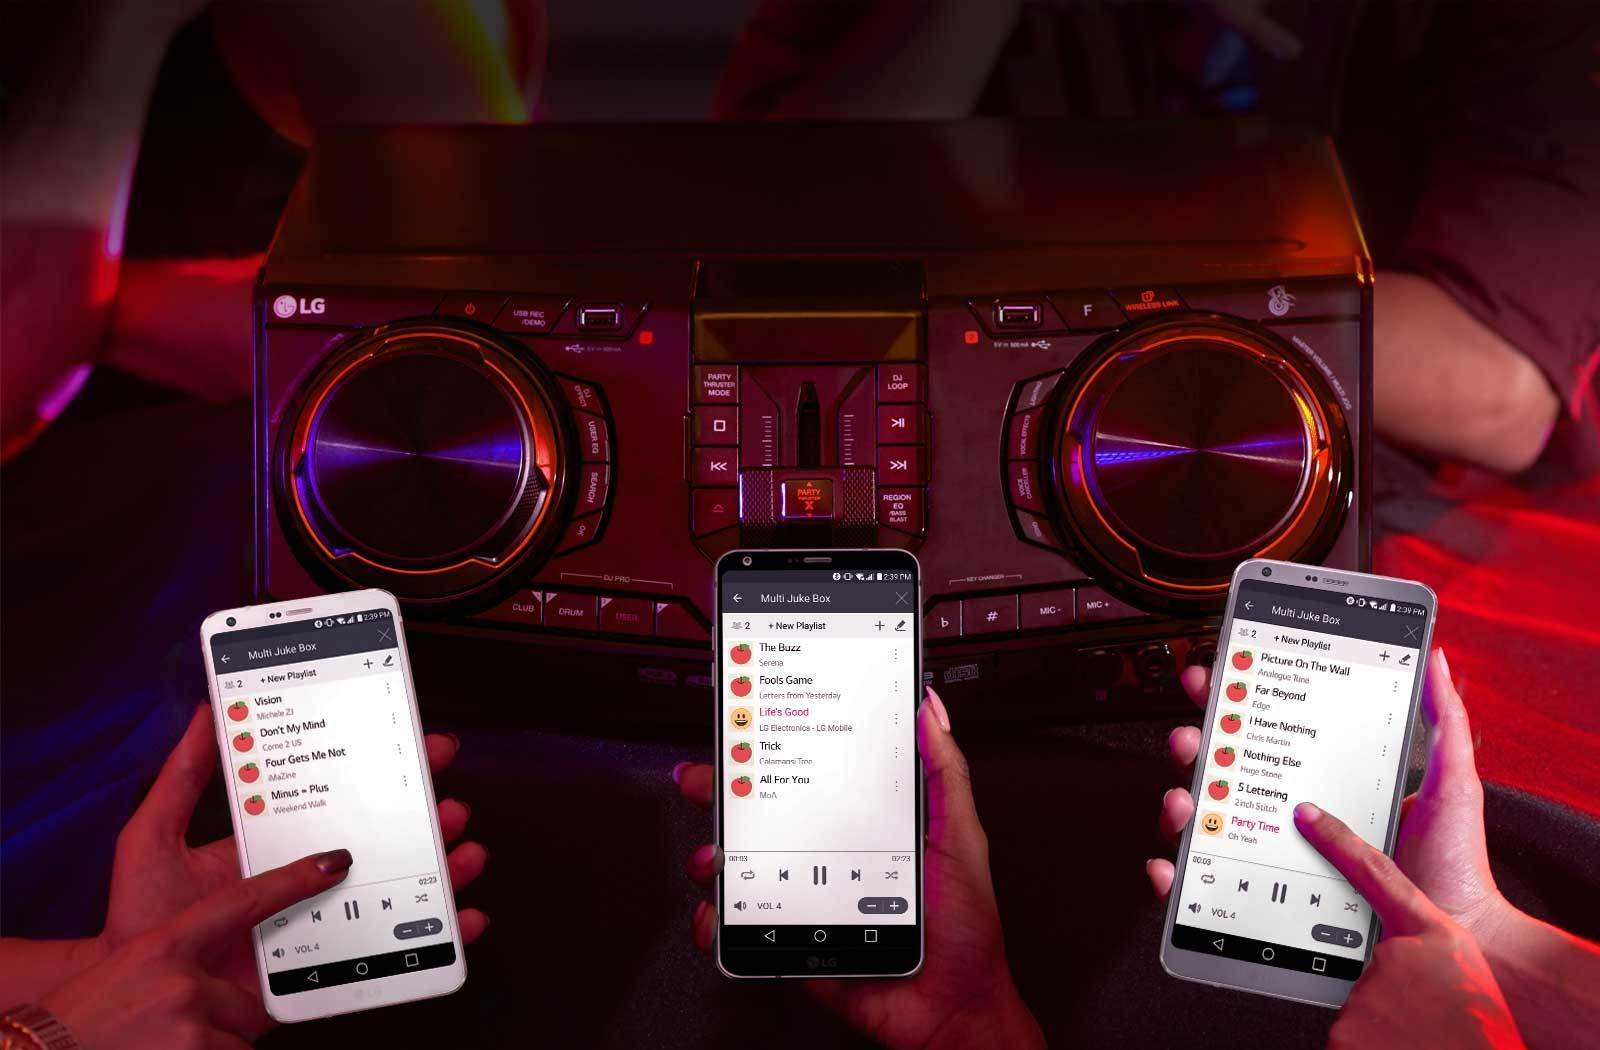 Multi Jukebox, build a playlist with your friends